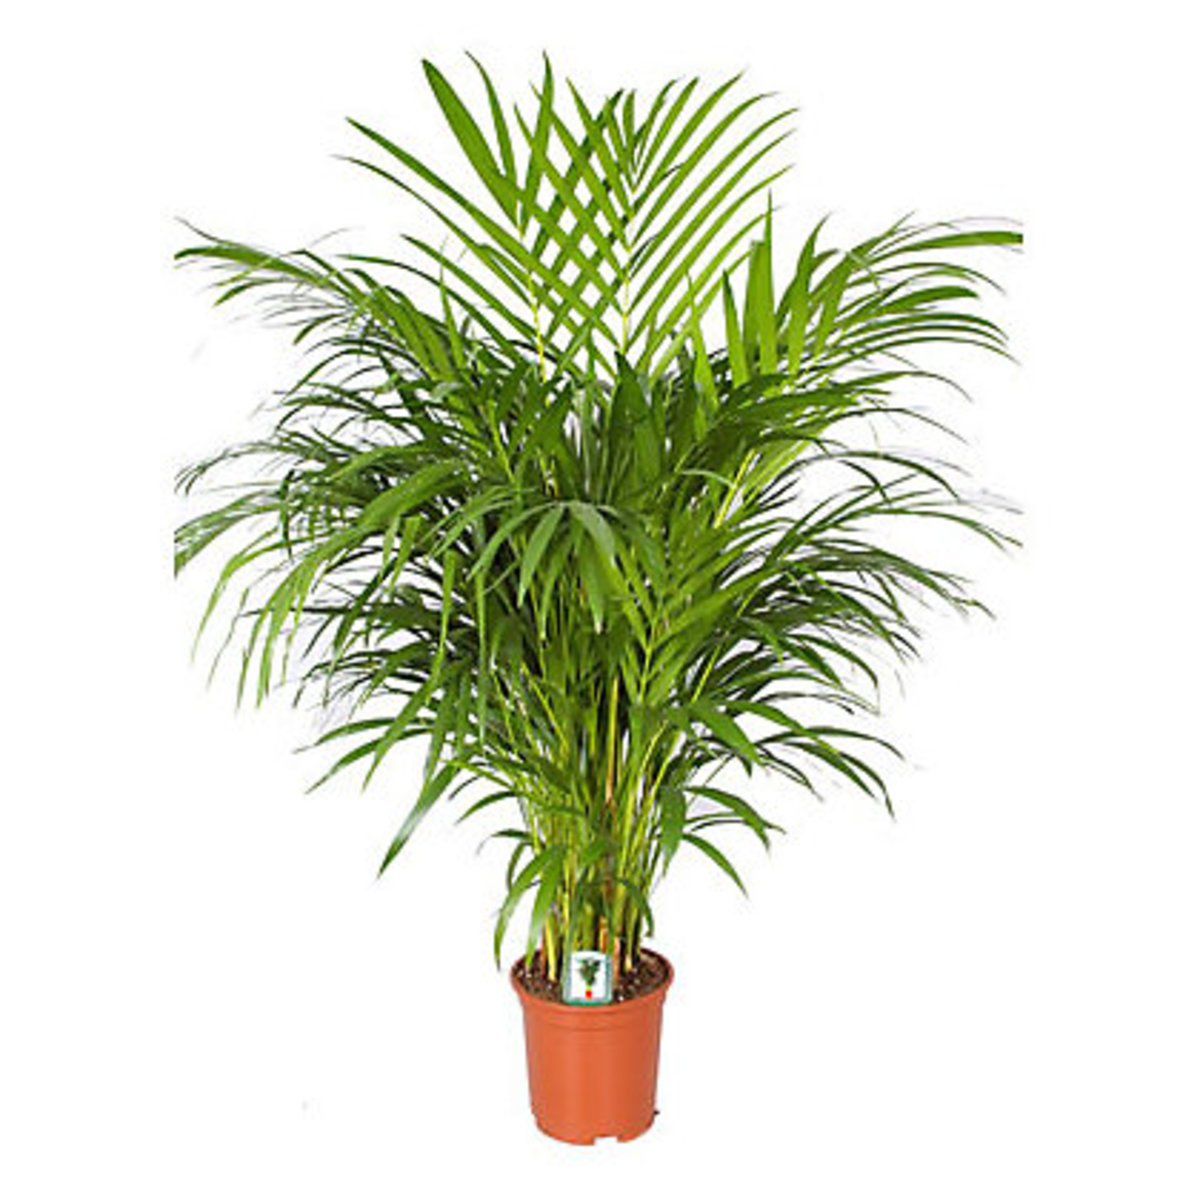 houseplants-that-clean-the-air-you-breathe